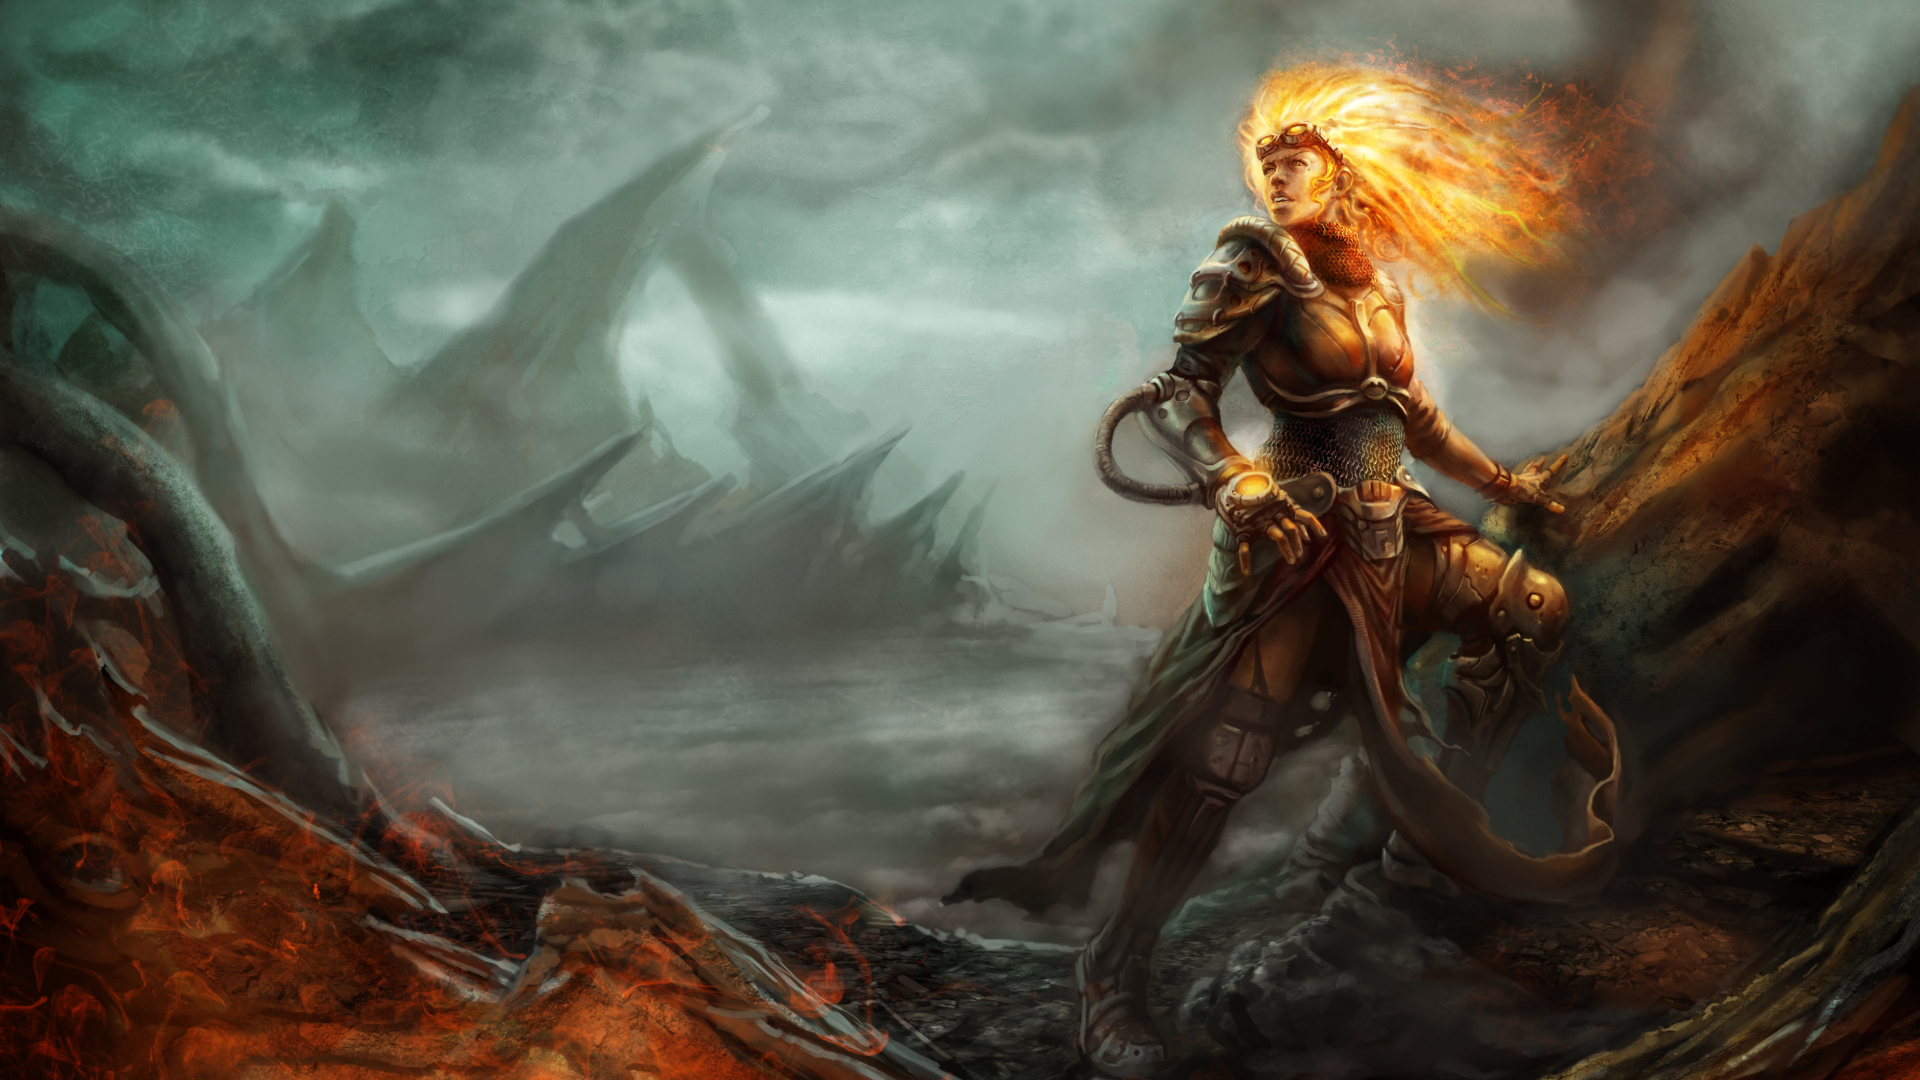 1920x1080 Magic The Gathering Chandra 1080p Laptop Full Hd